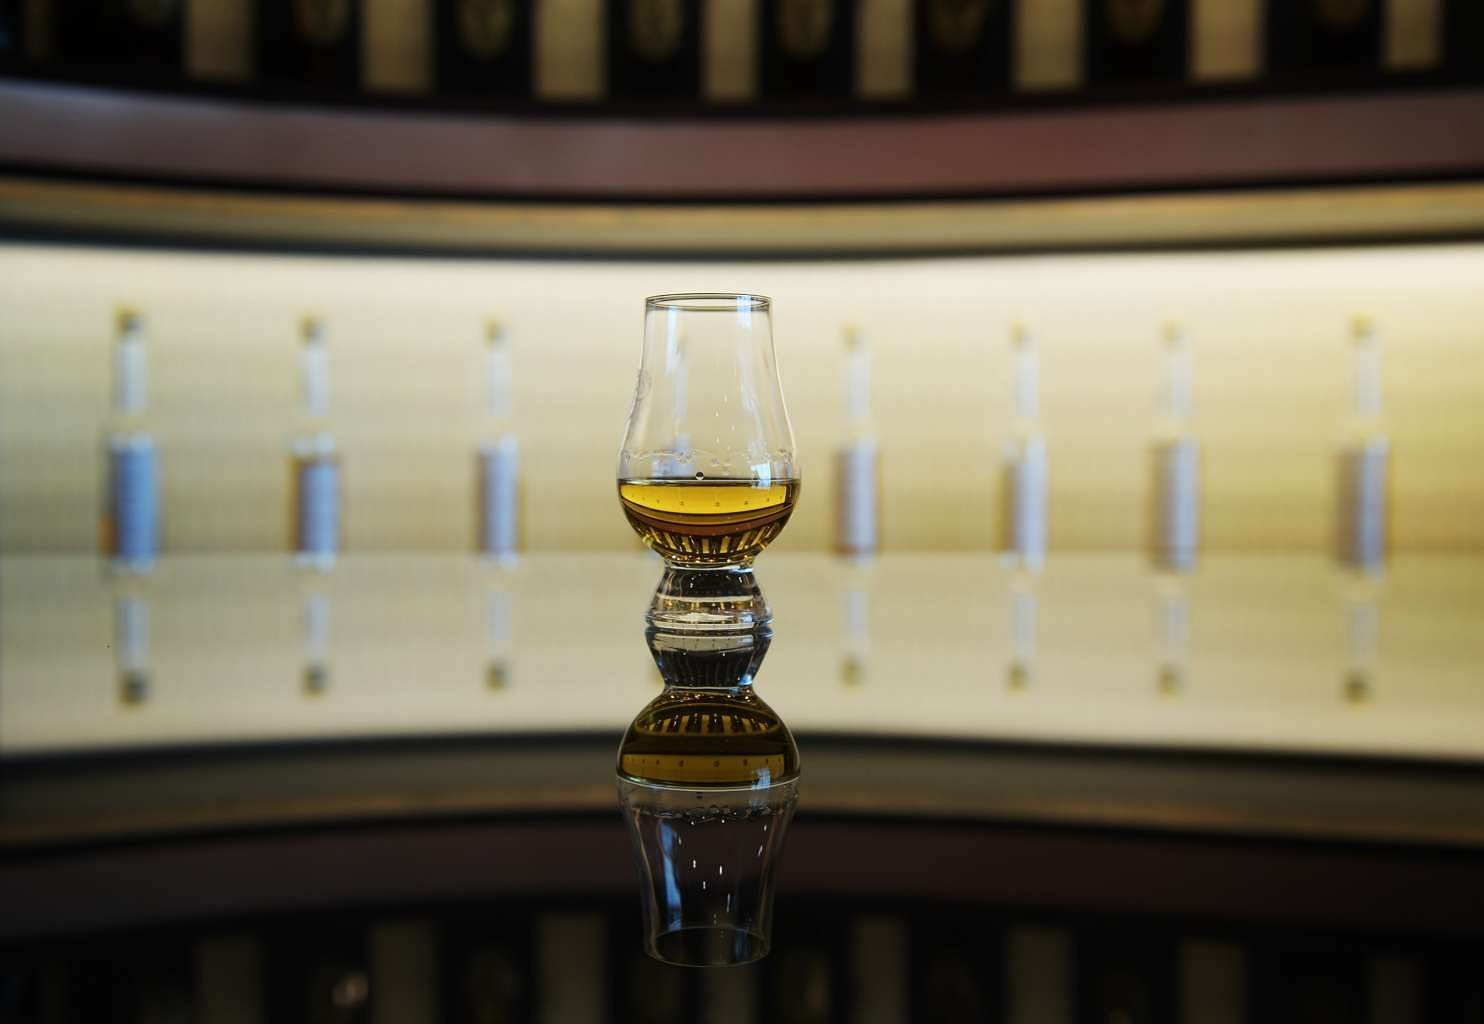 Whisky shortage? Don't panic, stocks are coming, Food News